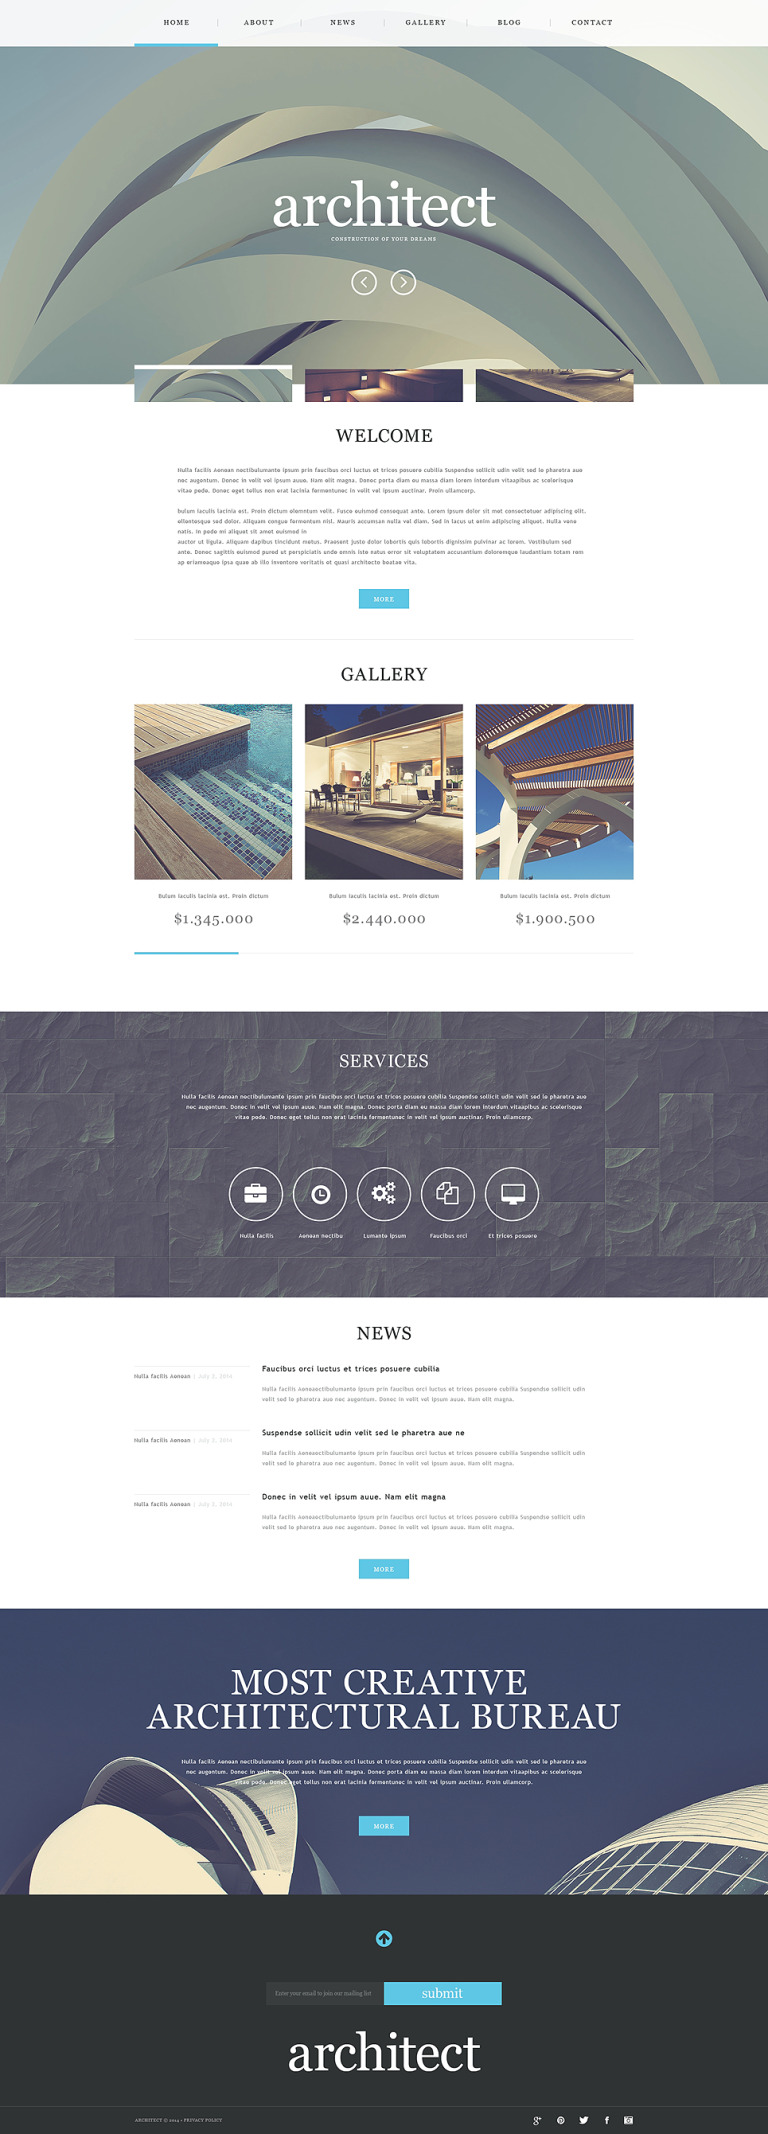 Construction Company Muse Template New Screenshots BIG